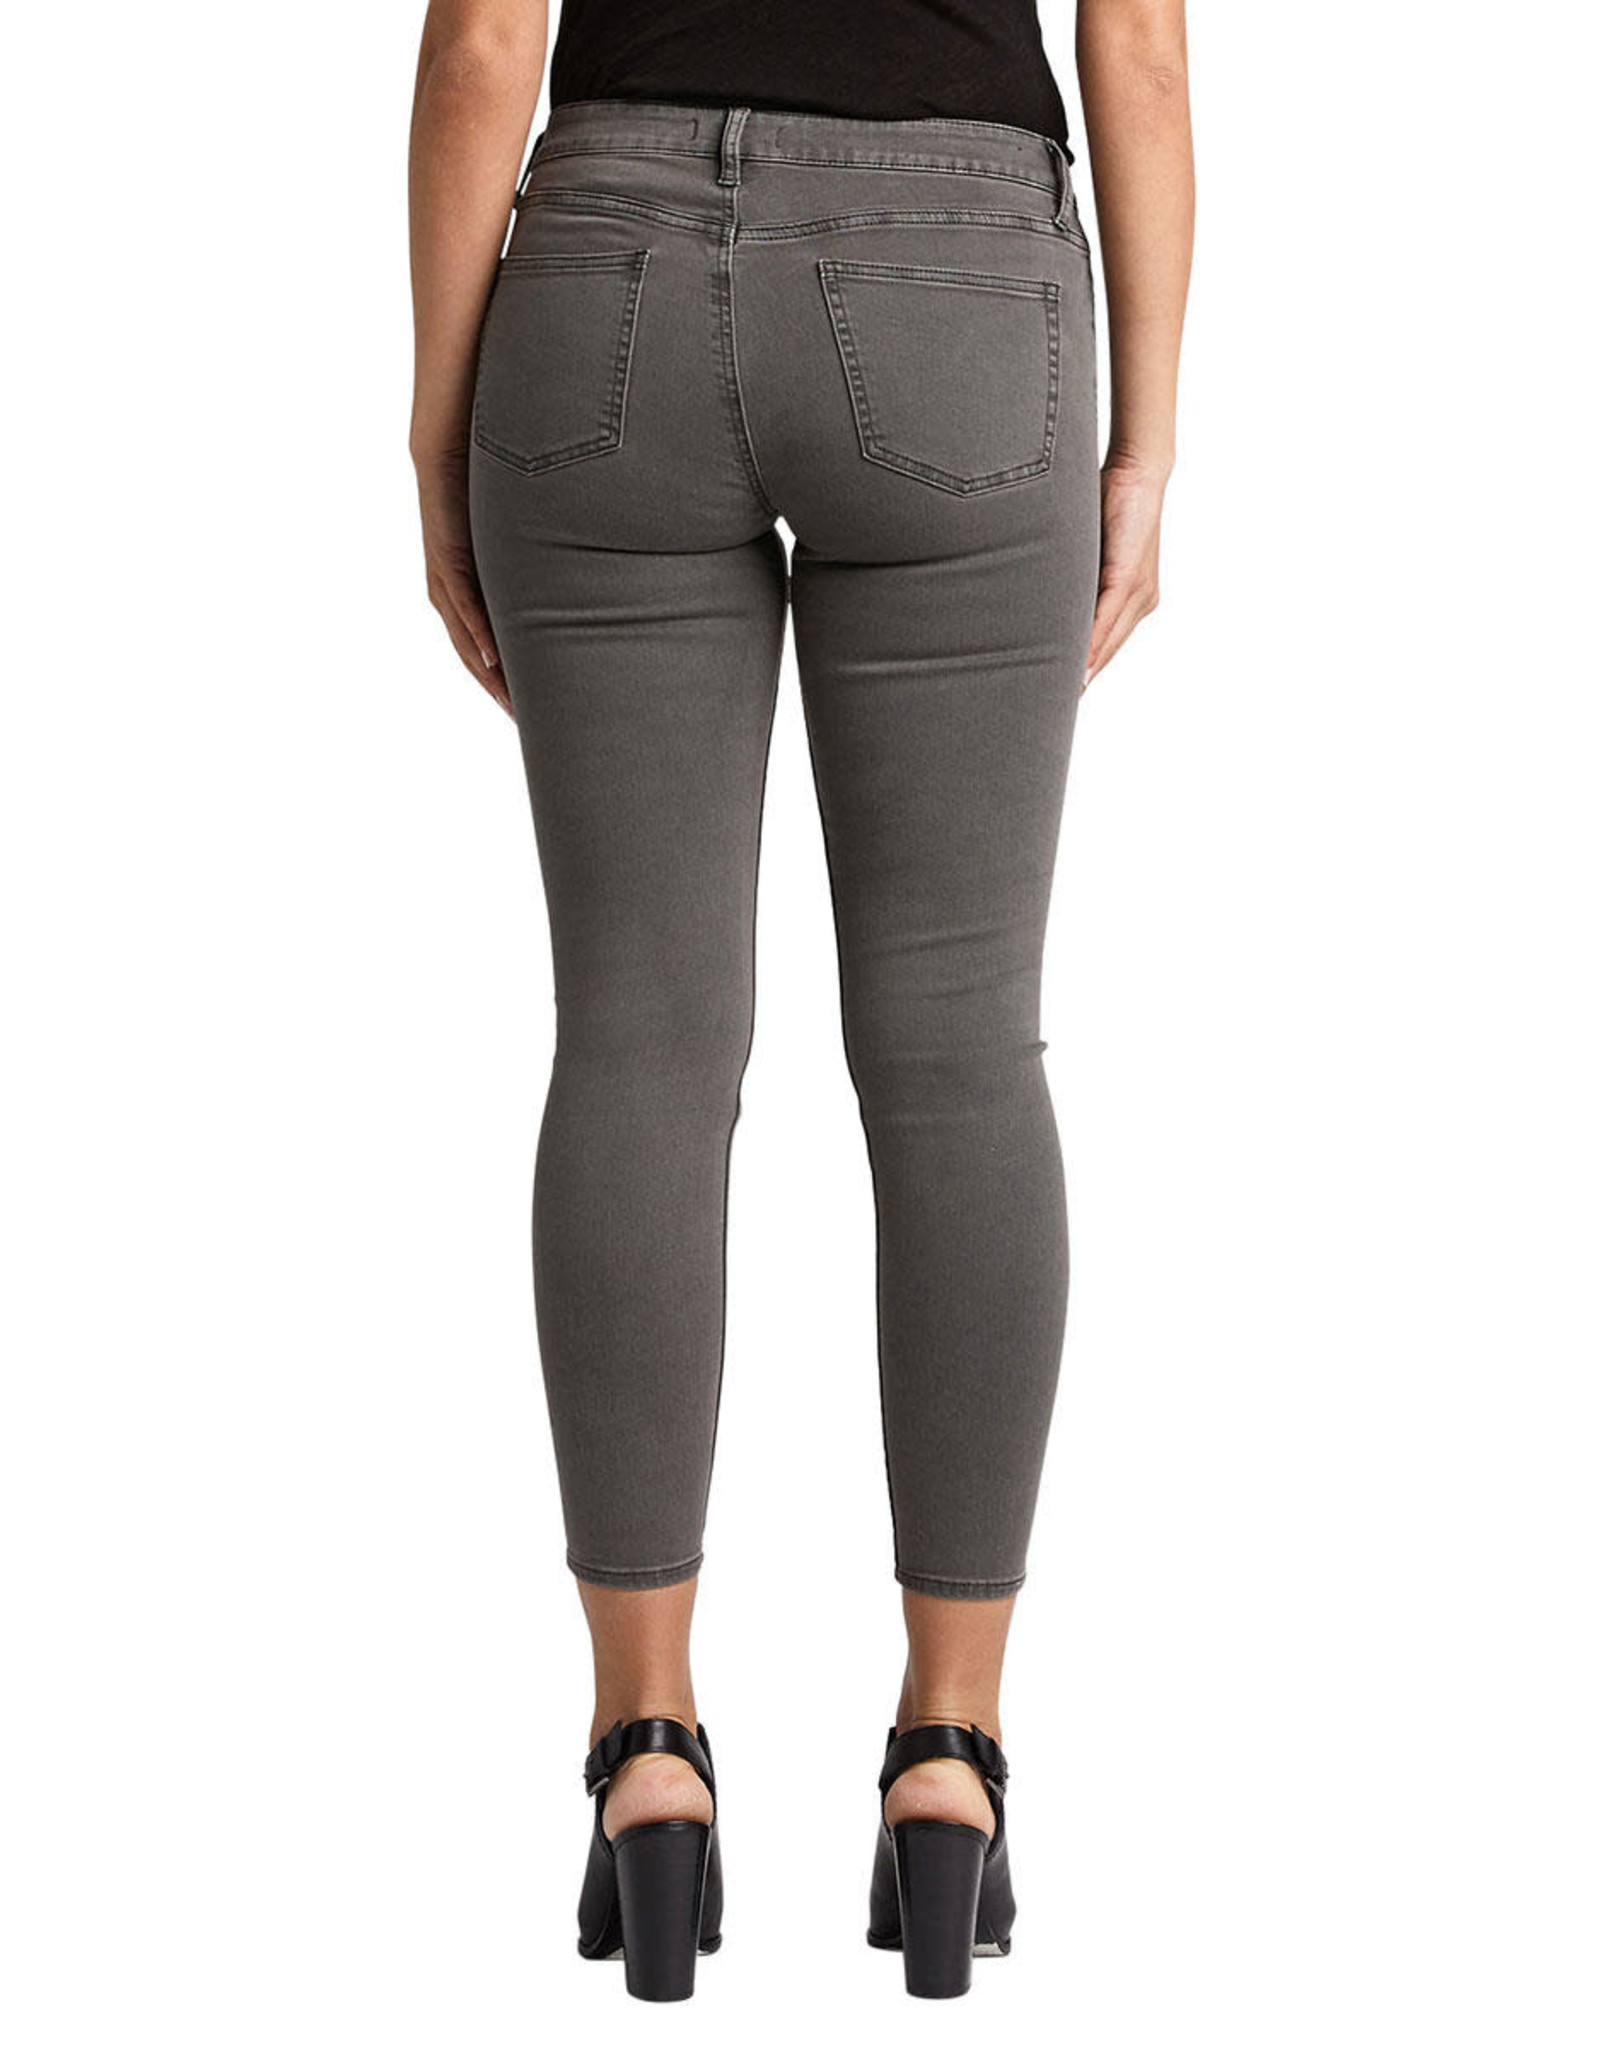 Silver Brand Jeans Most Wanted Grey Skinny Jeans. Mid Rise.